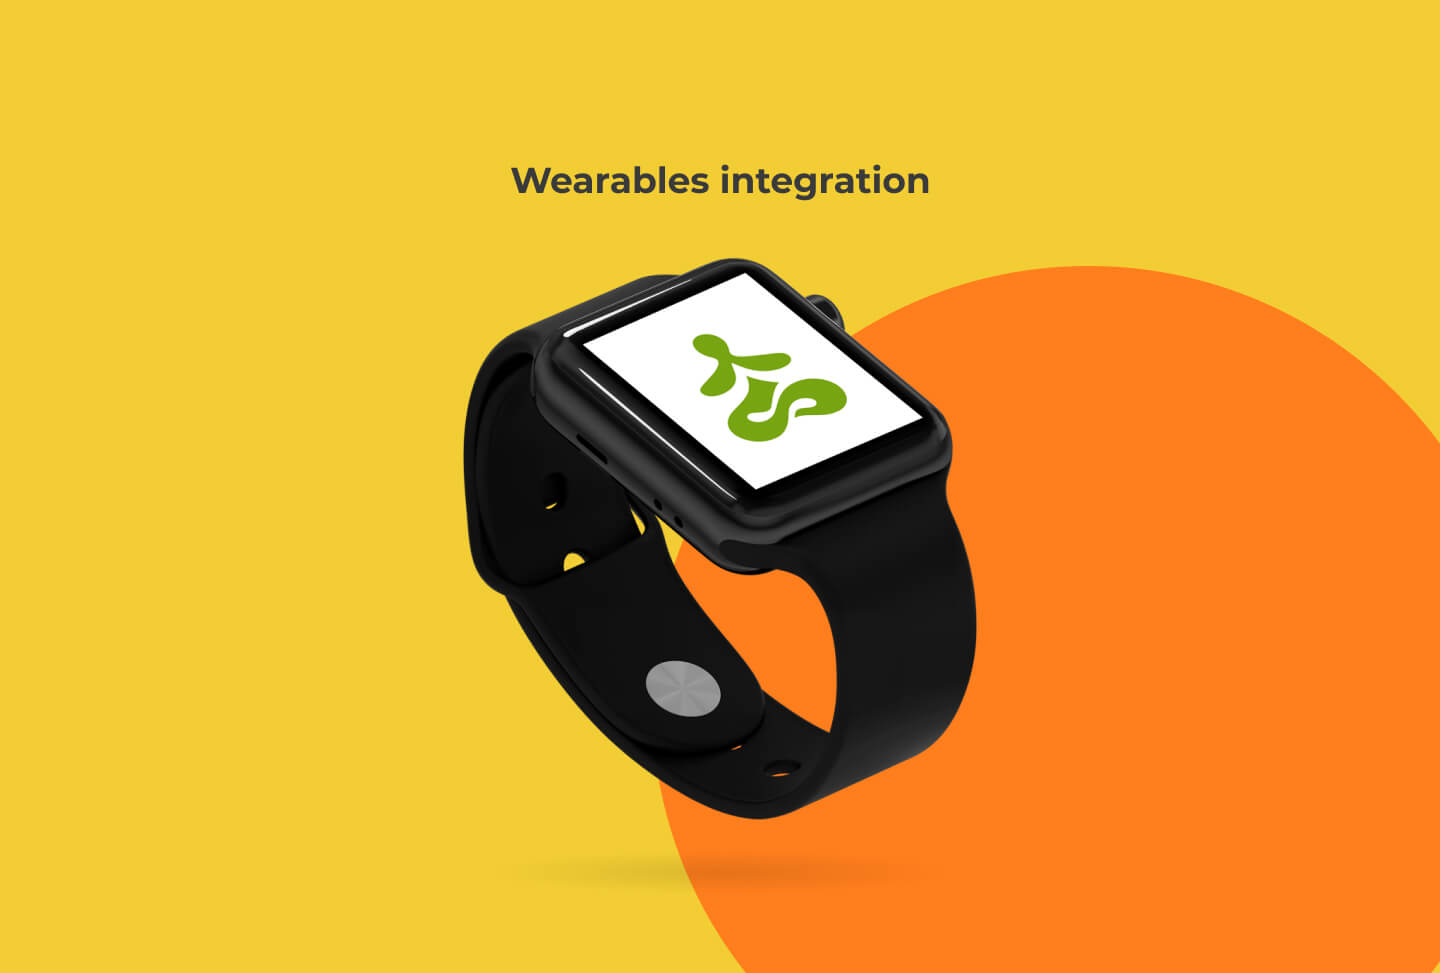 Wearables integration